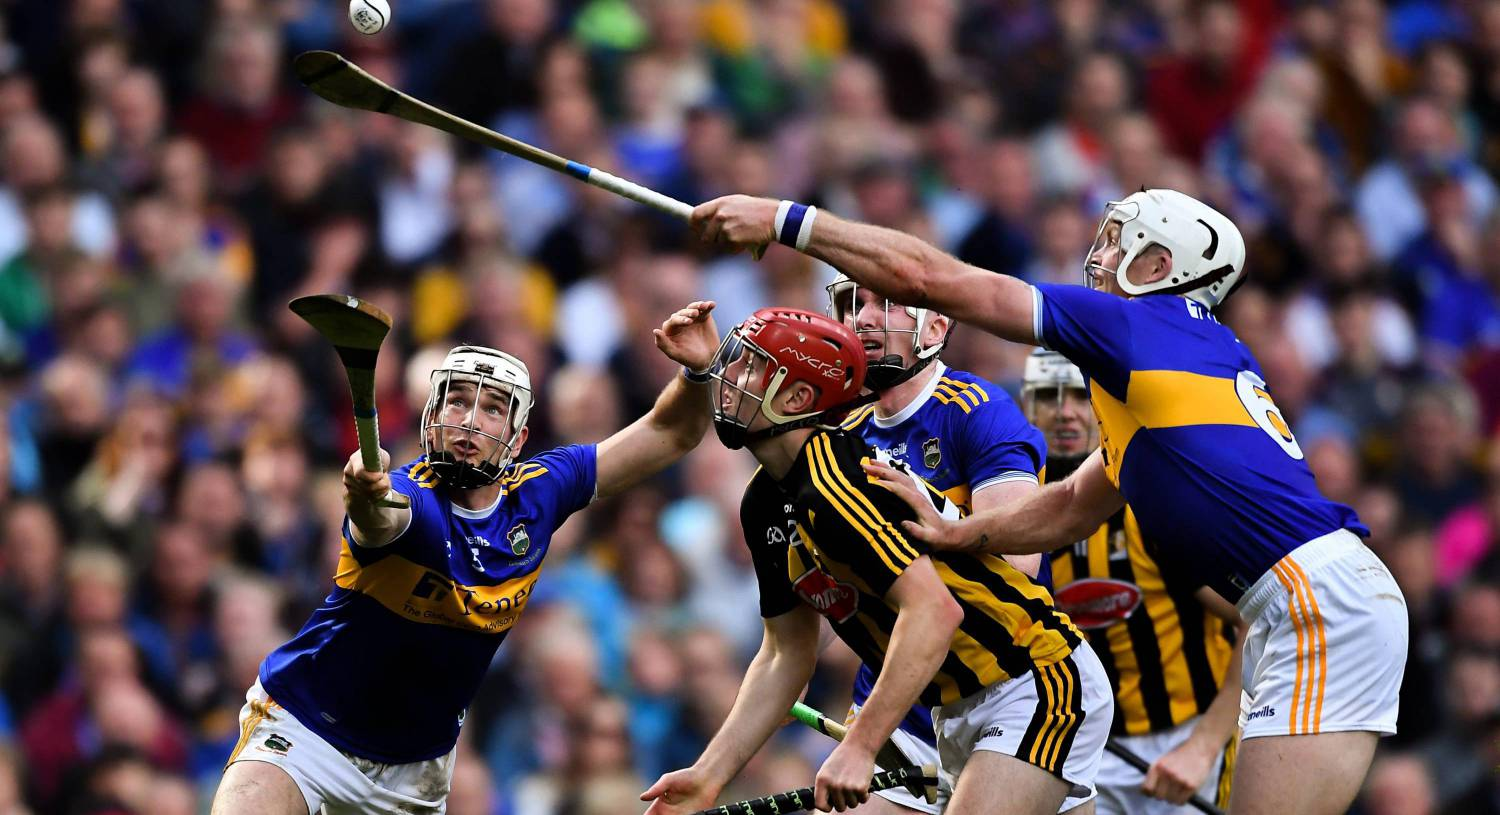 Munster and Leinster draw latest step on hurling's road to return